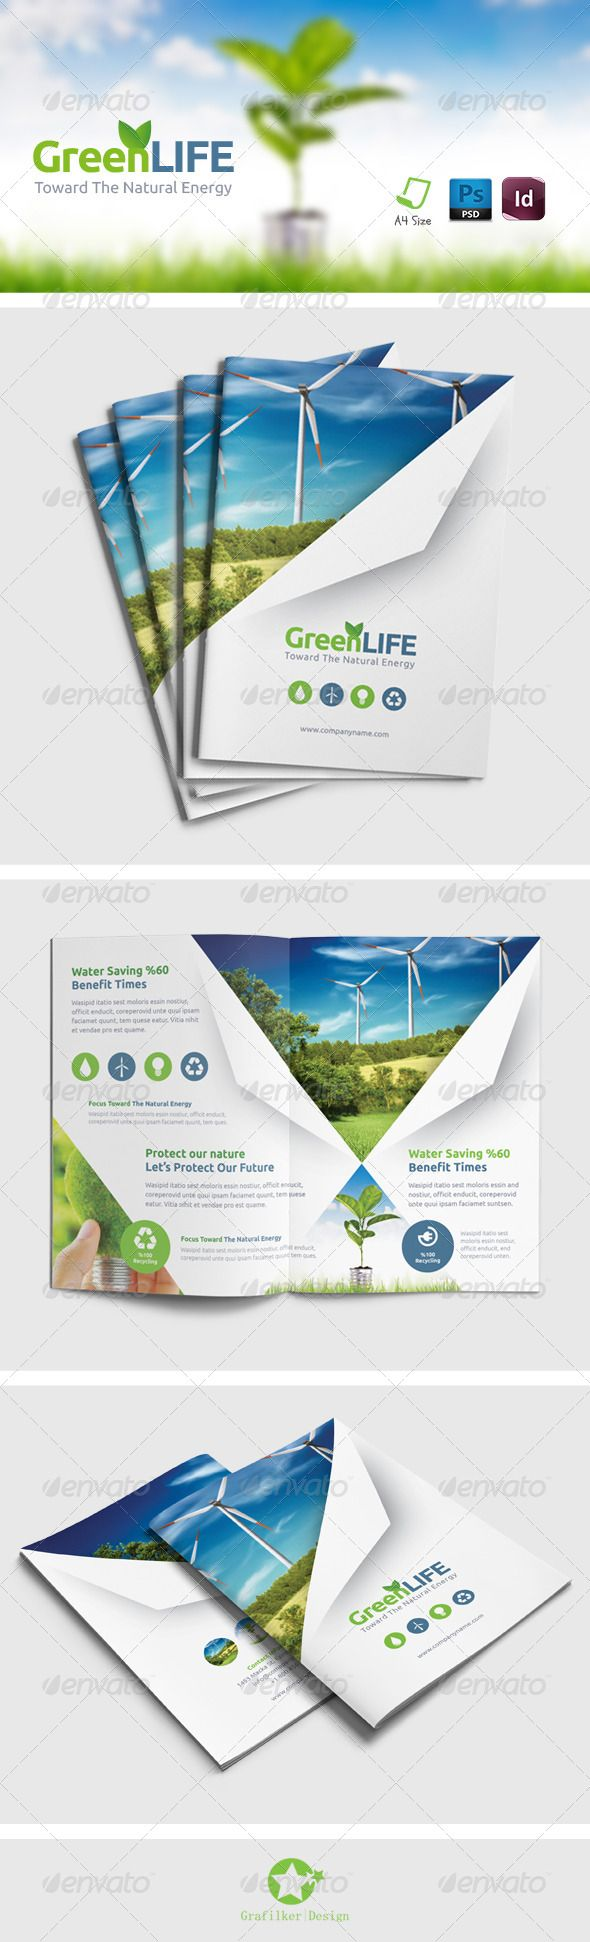 green energy brochure templates clean corporate design eco ecological energy